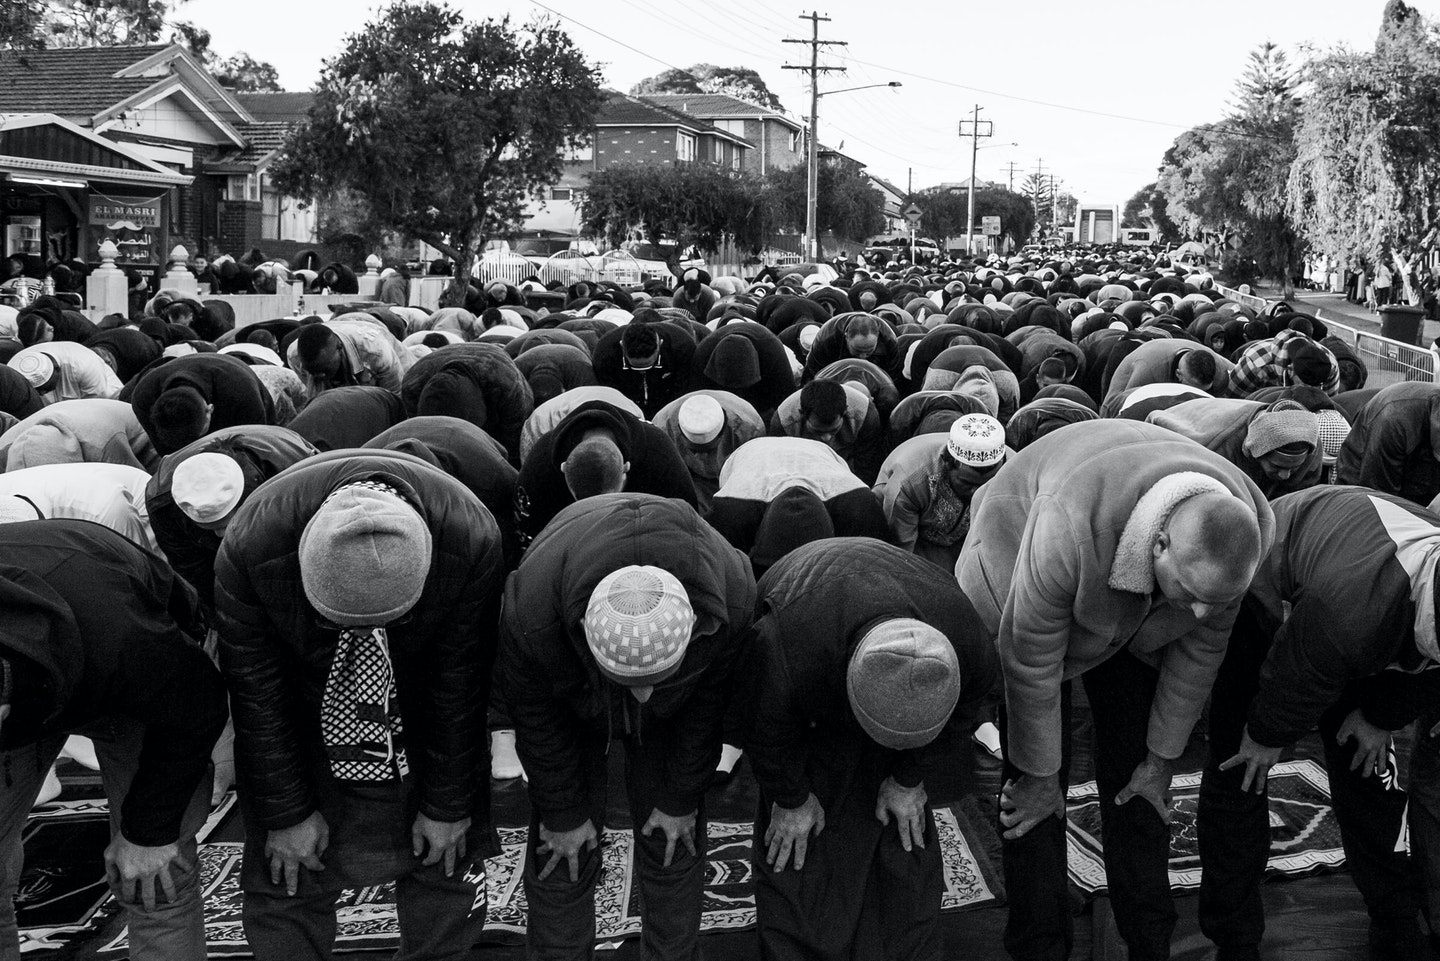 Peter Morgan, 'Eid prayers on Wangee Road, Lakemba', Lakemba, NSW.